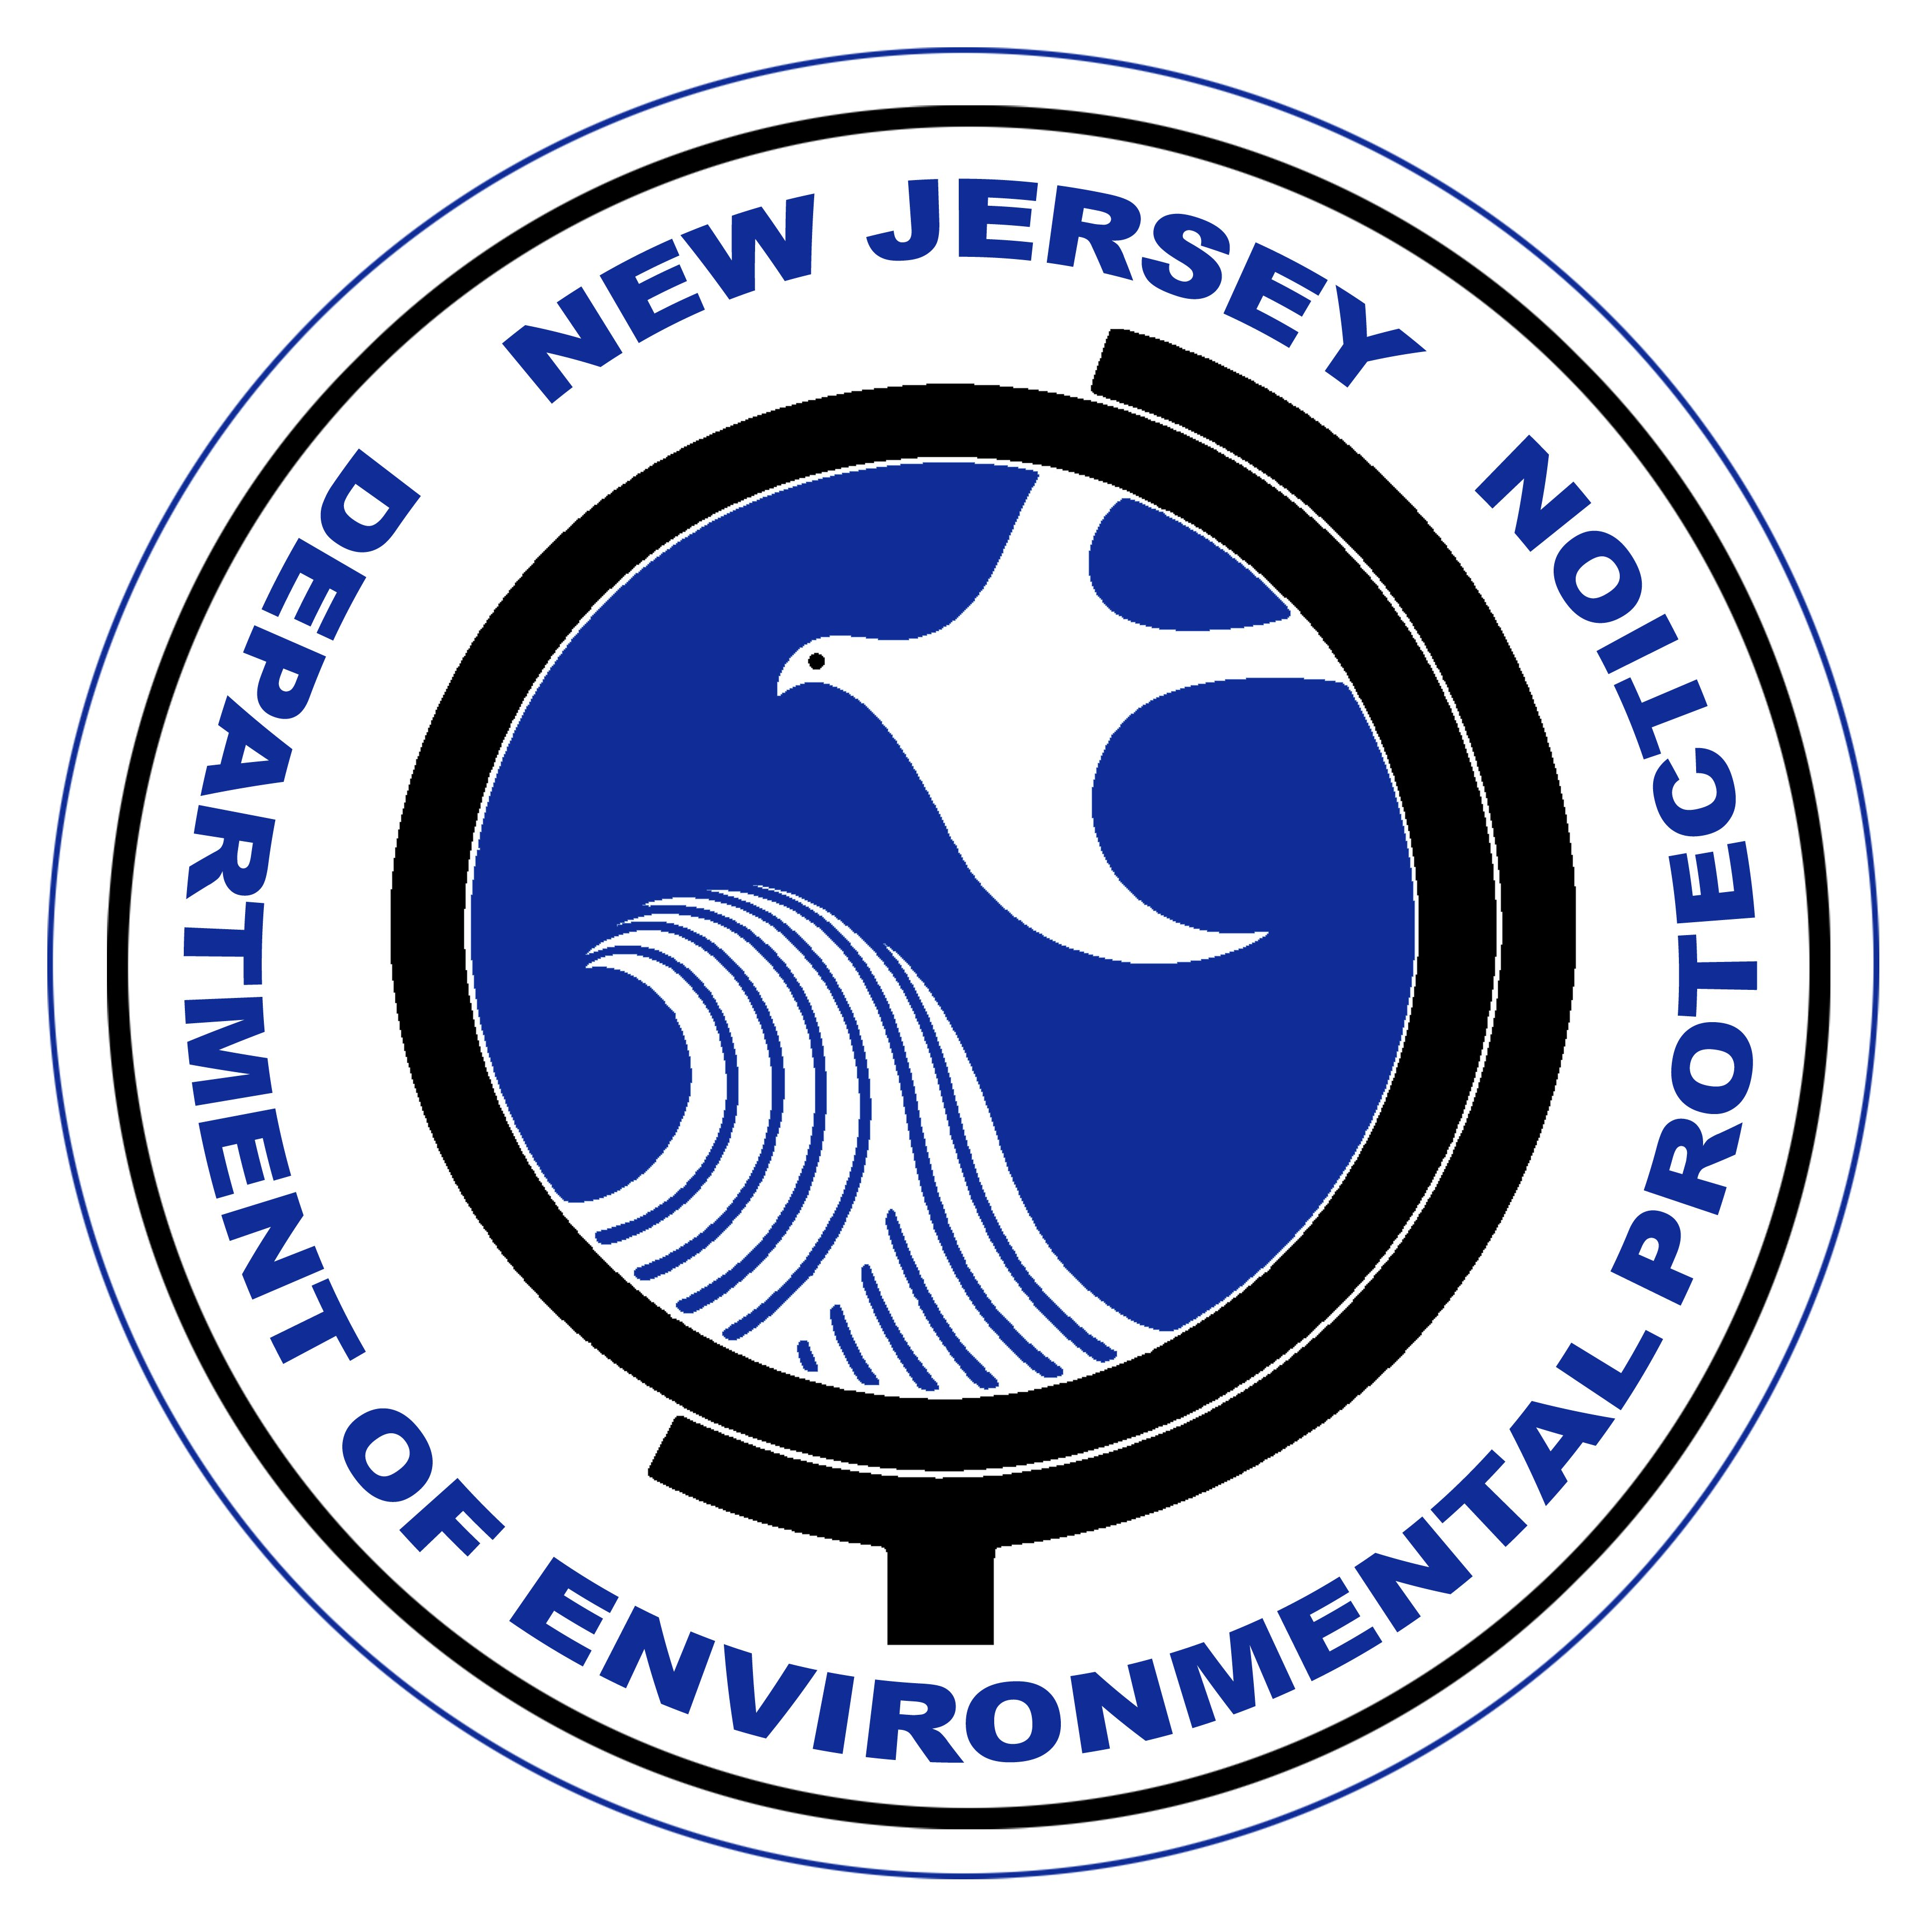 State of New Jersey Department of Environmental Protection